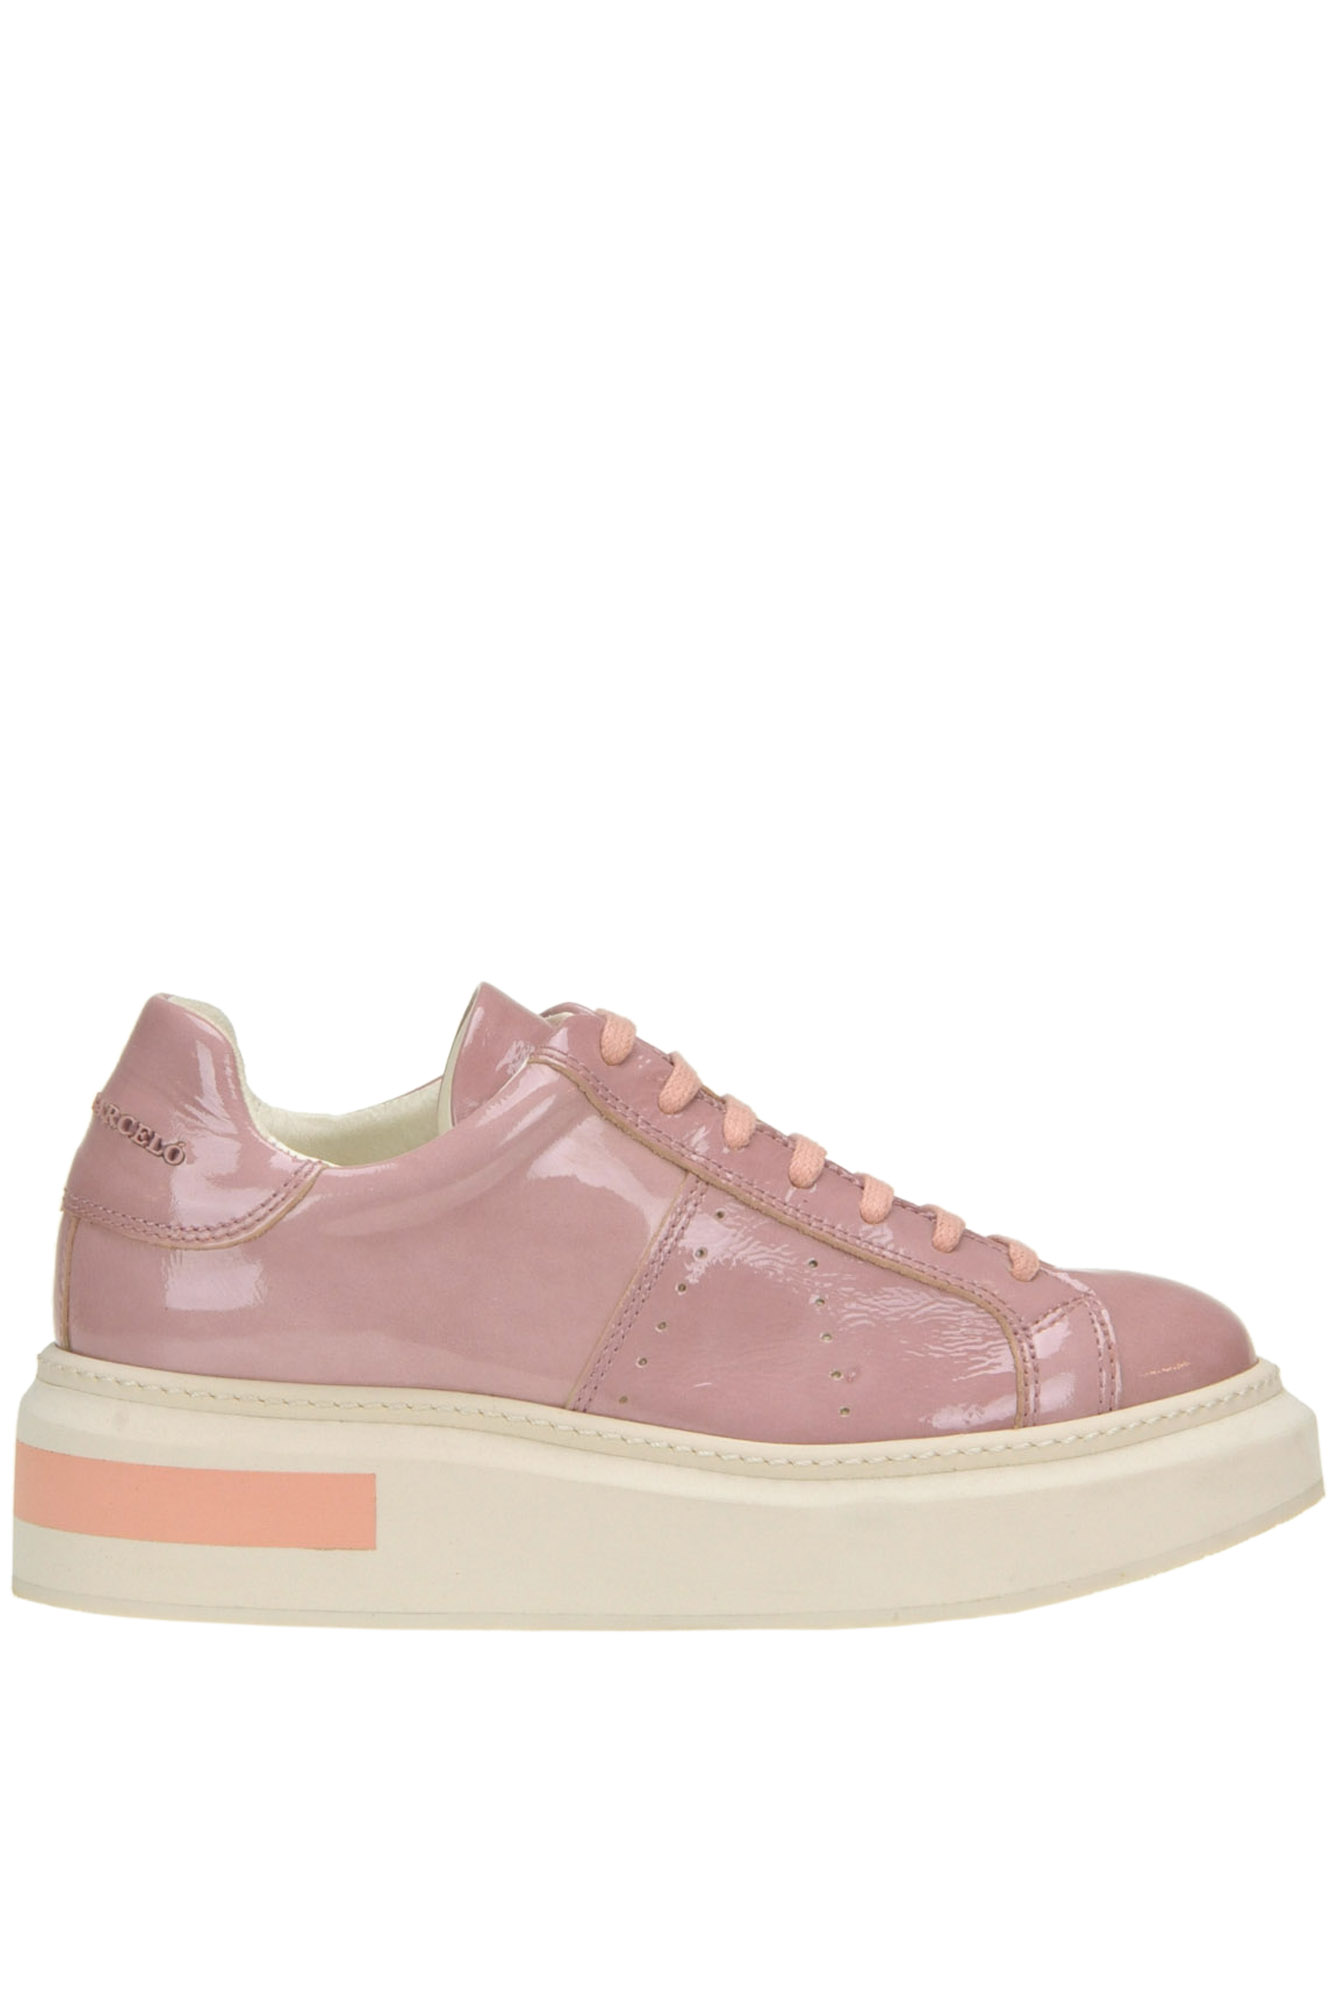 Mitte Round Sneakers in Cipria